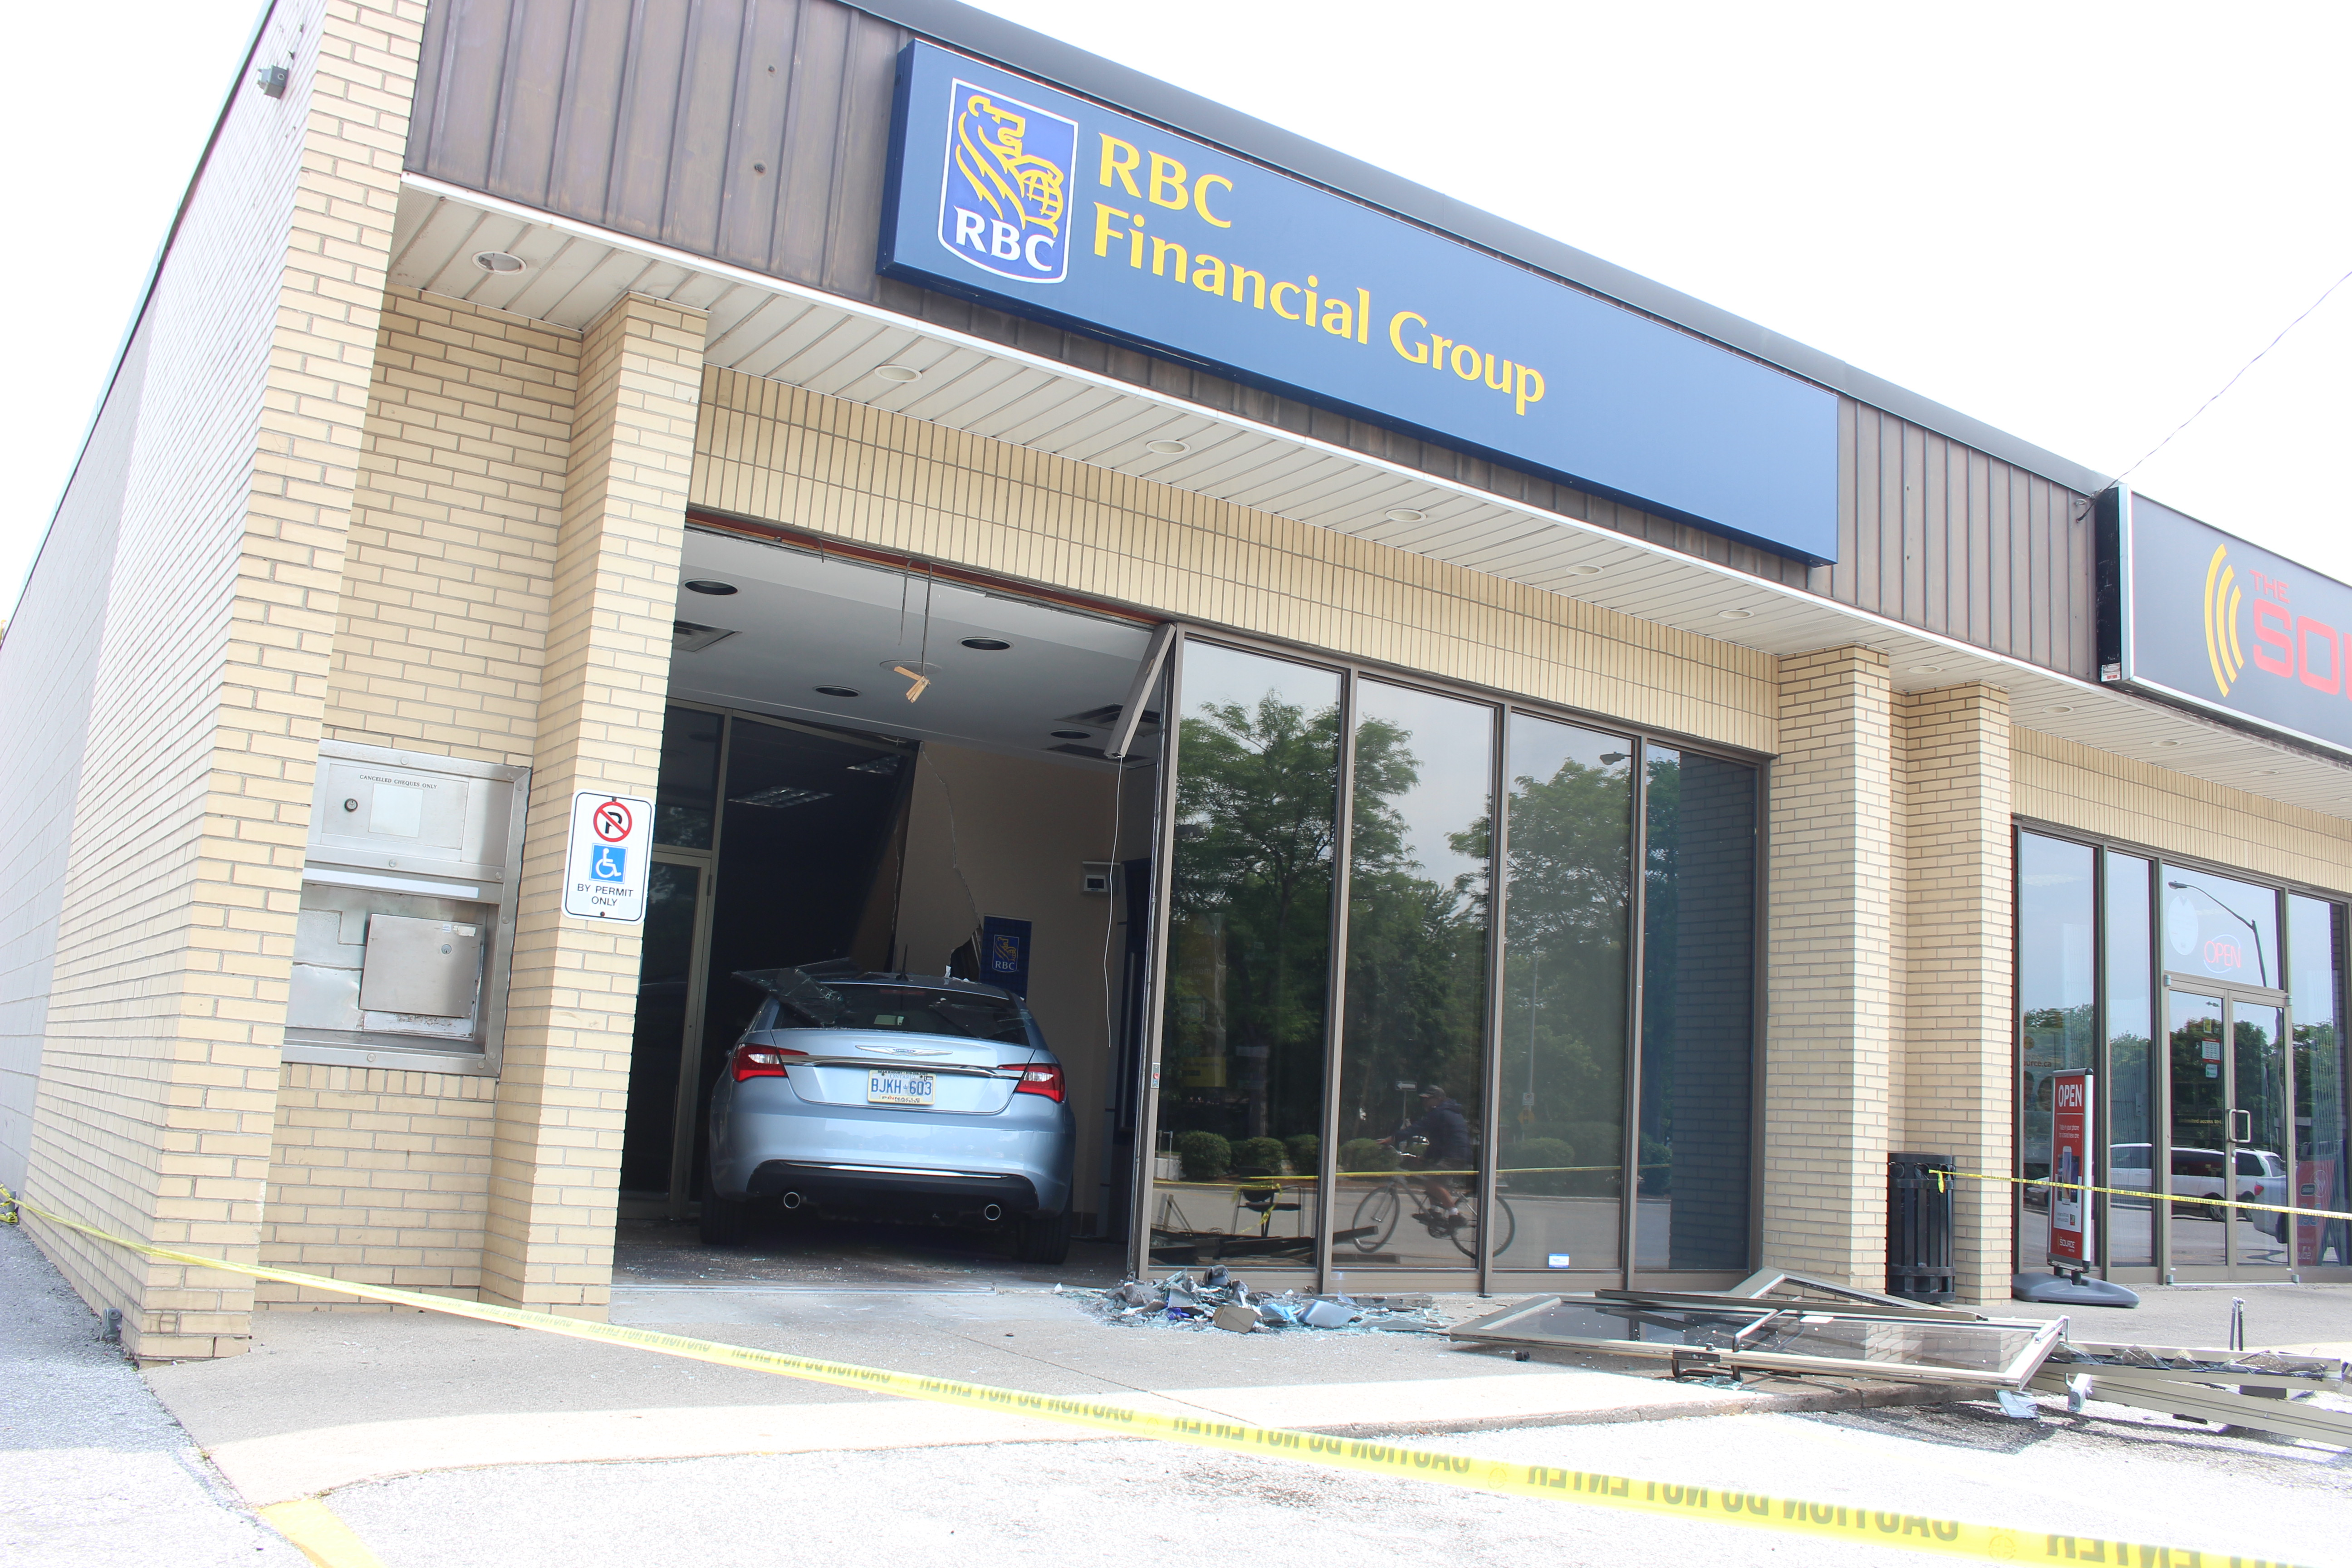 Three people were sent to hospital after a car smashes through the front of an RBC Bank on Huron Church Rd., July 3, 2015. (Photo by Jason Viau)